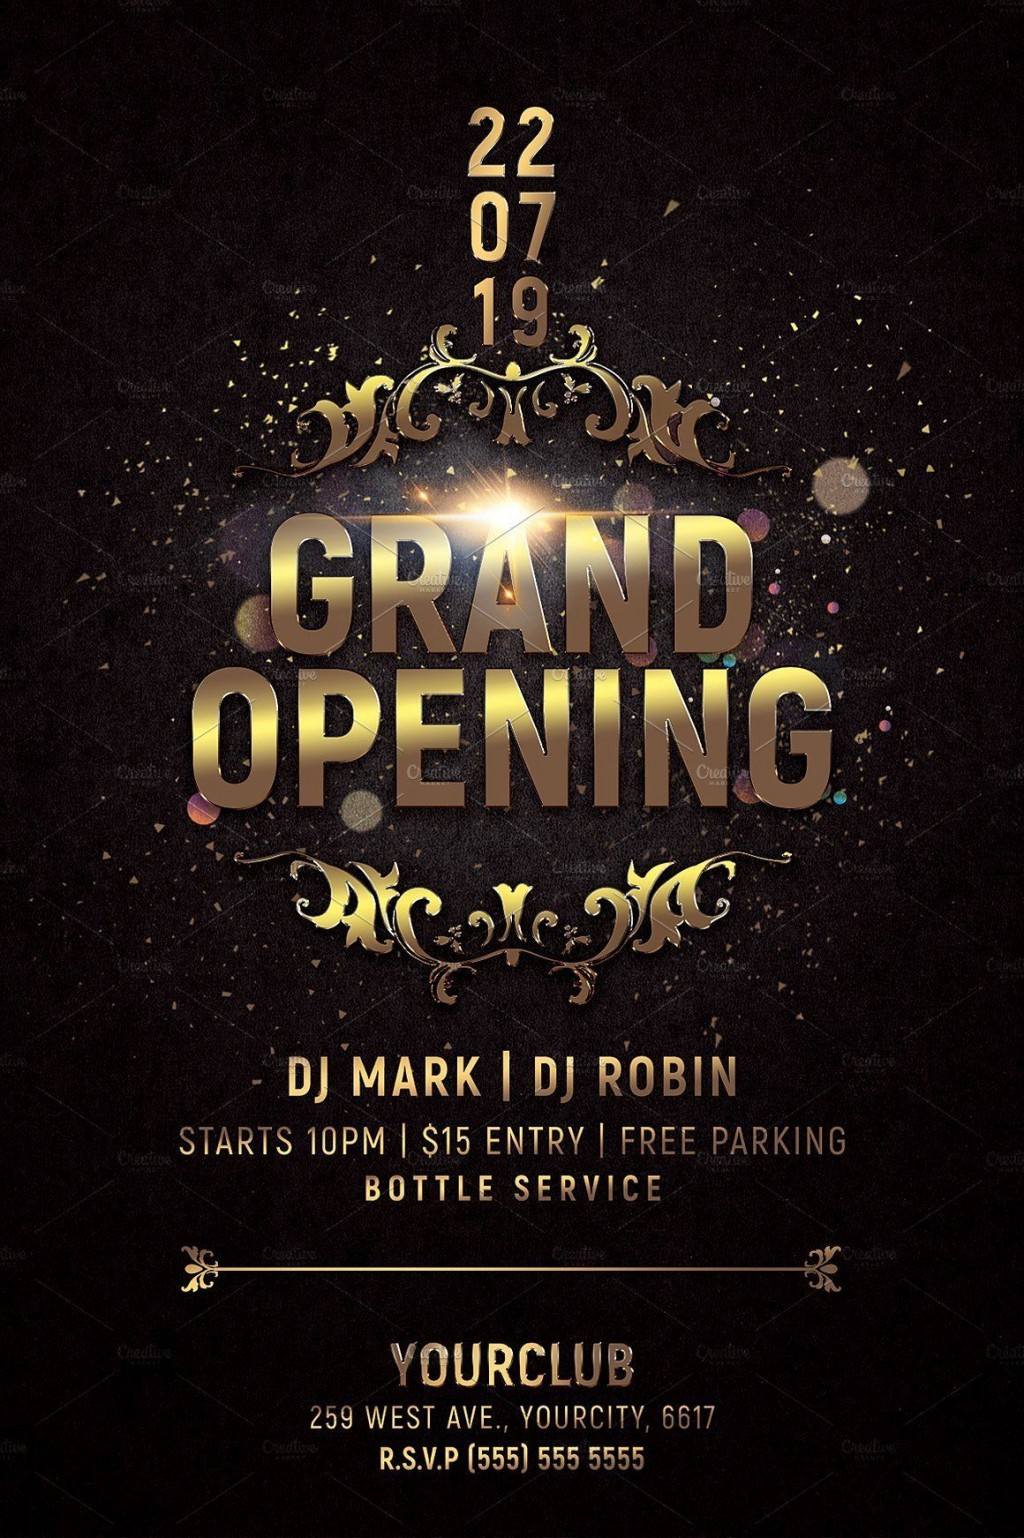 000 Awesome Grand Opening Flyer Template Free Image  RestaurantLarge